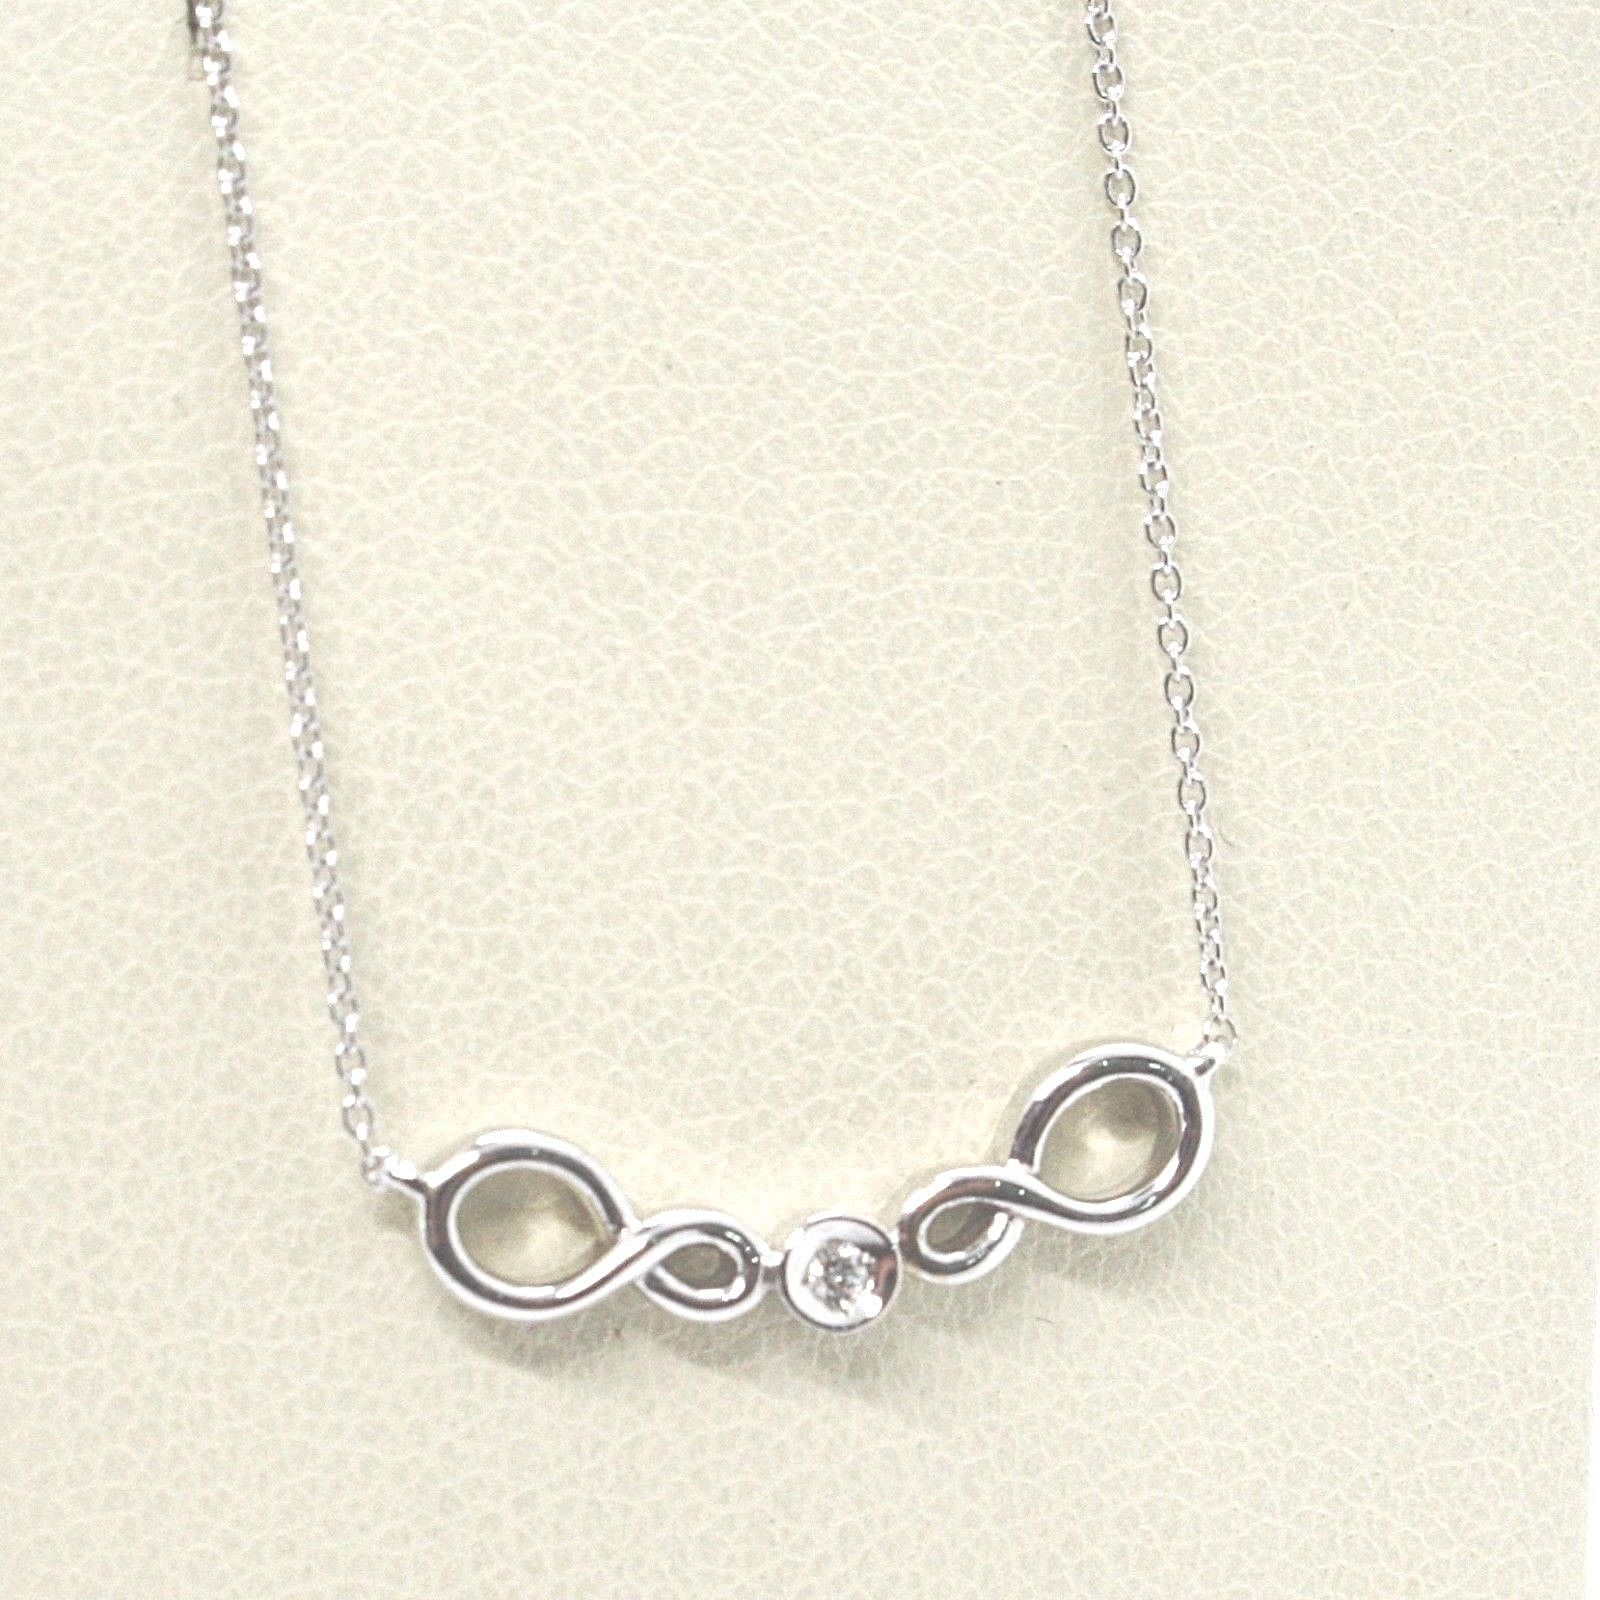 ORSINI 18K WHITE GOLD NECKLACE, DOUBLE INFINITE CENTRAL DIAMOND, MINI ROLO CHAIN